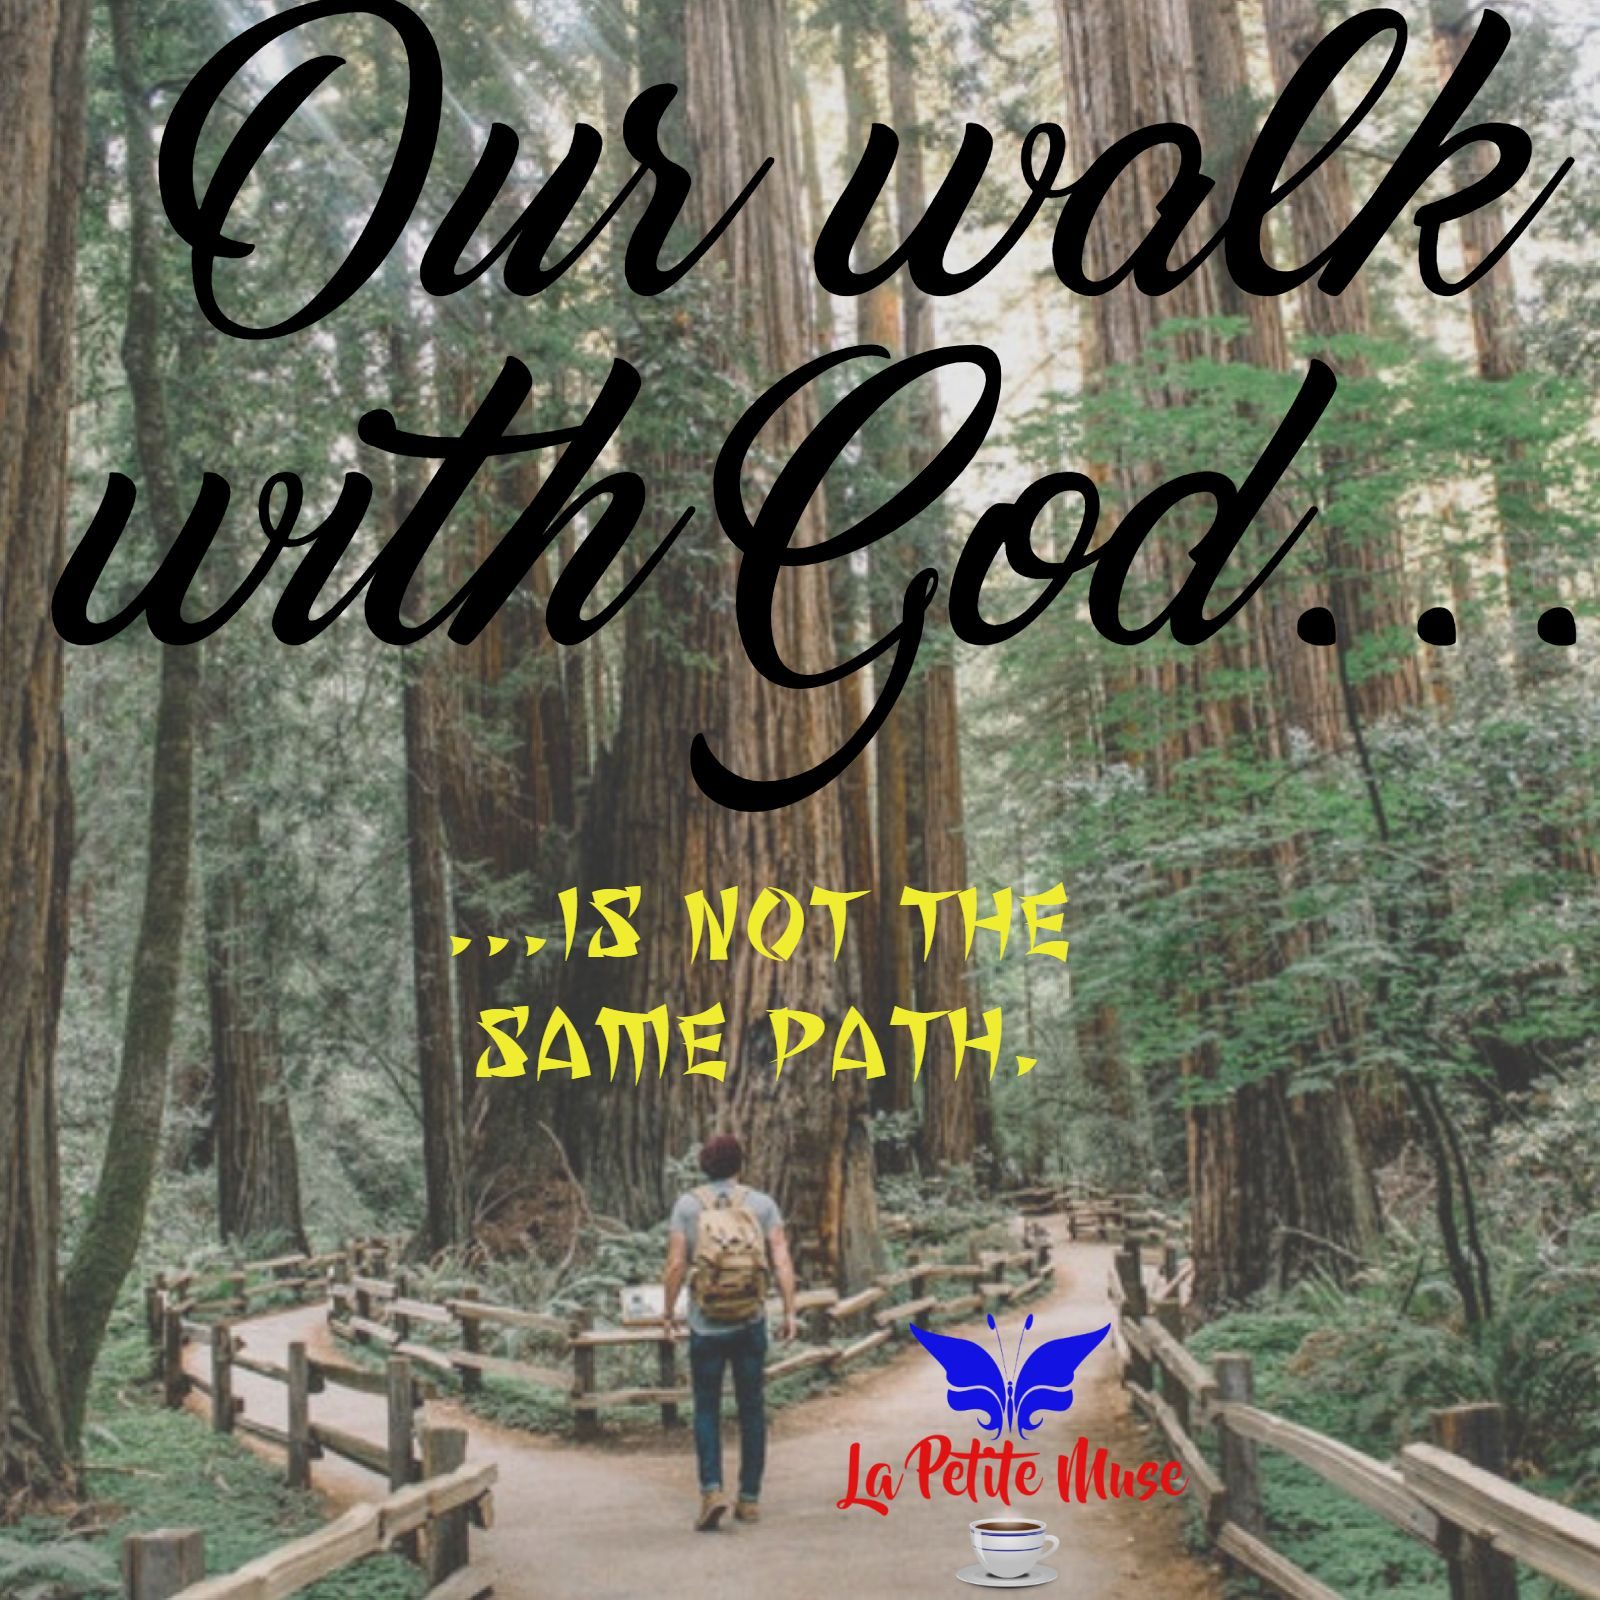 Our walk with God is not the same path